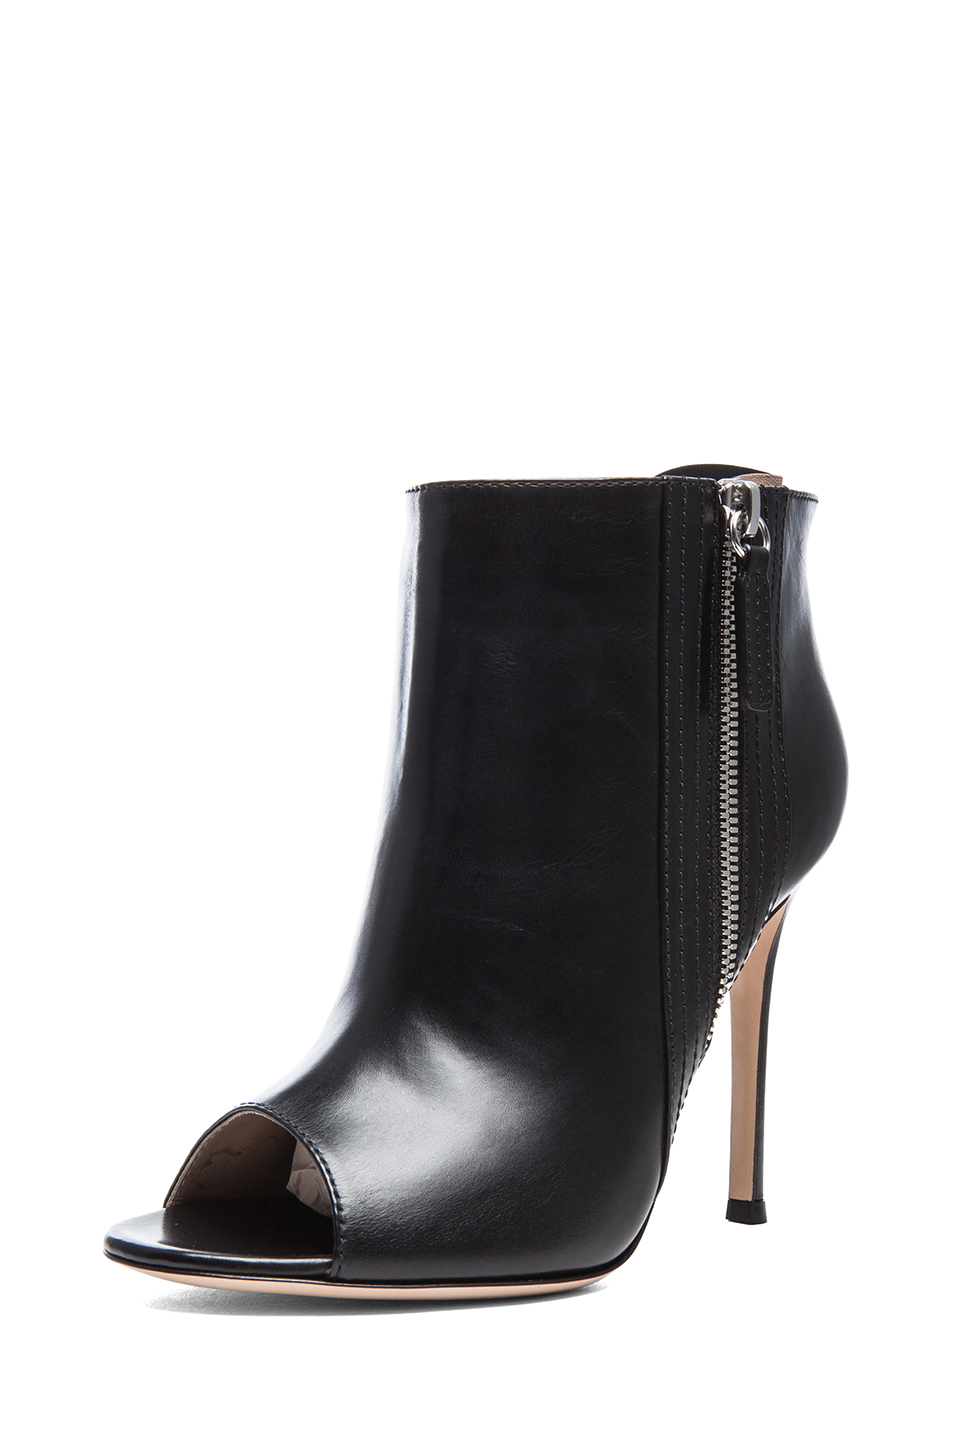 Gianvito Rossi | Open Toe Leather Booties in Black